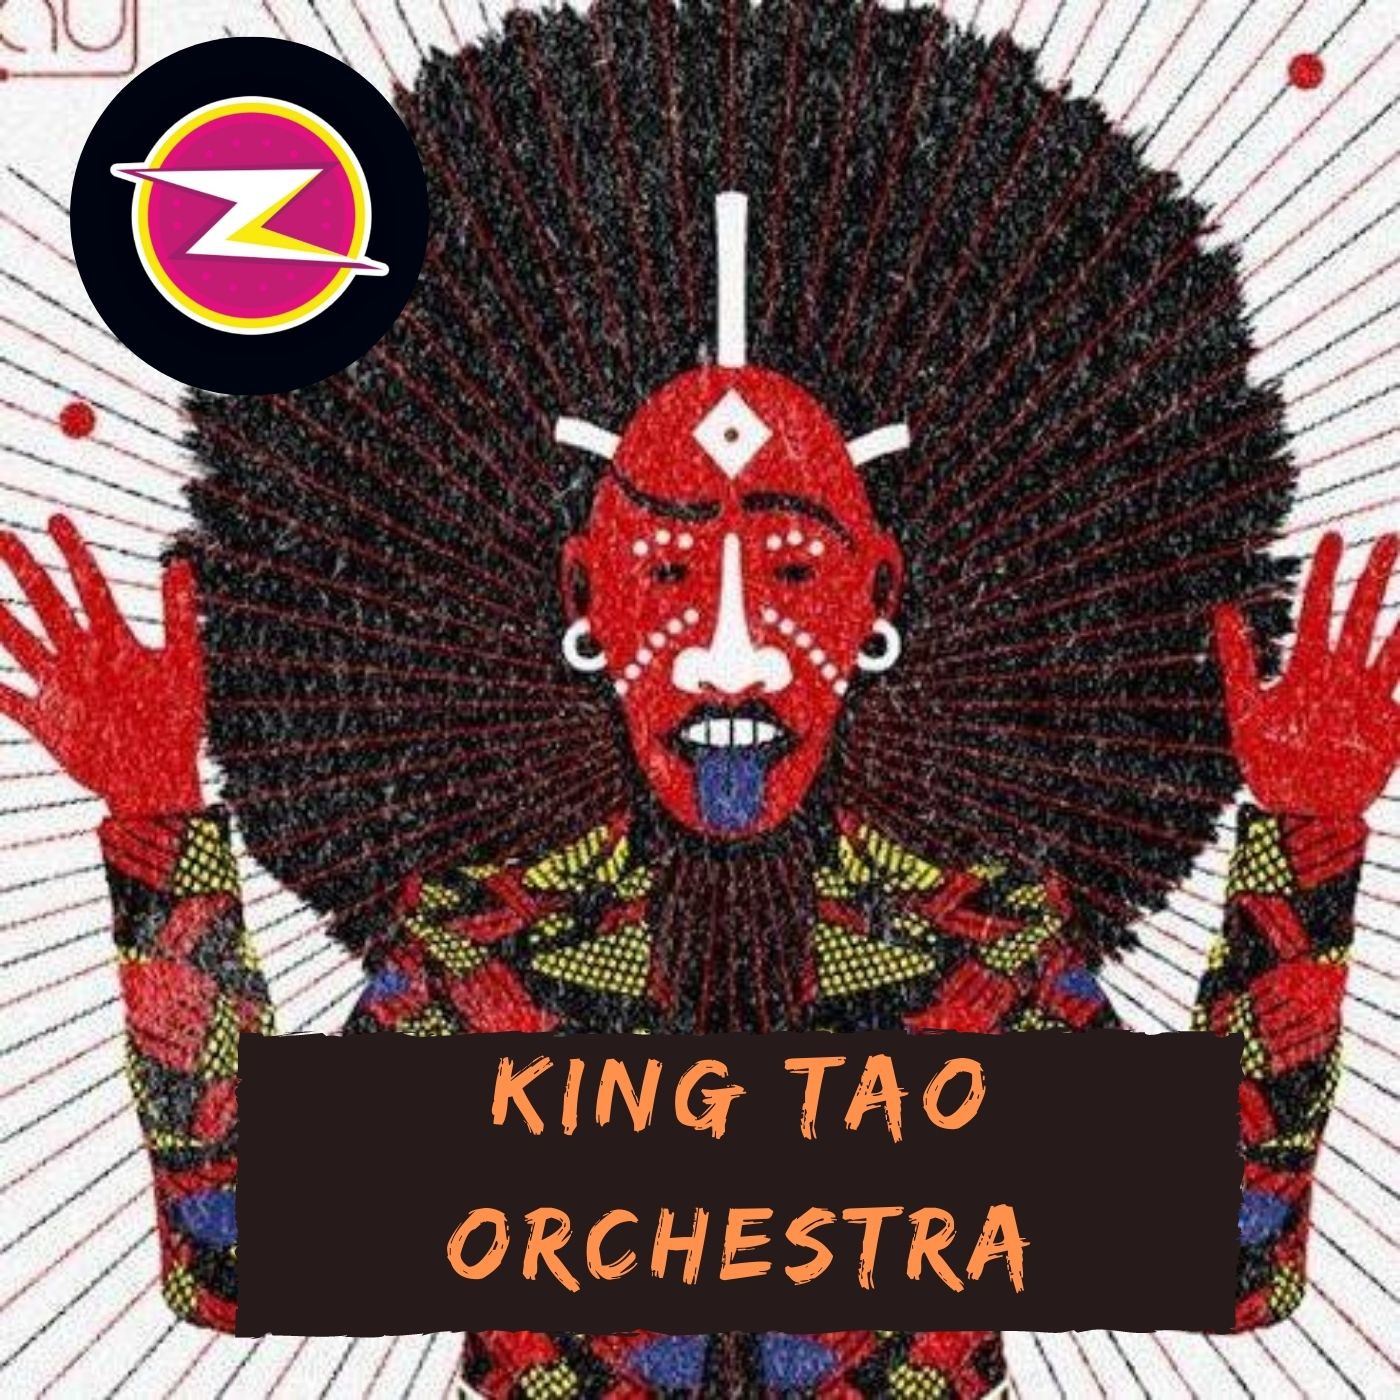 King Tao Orchestra